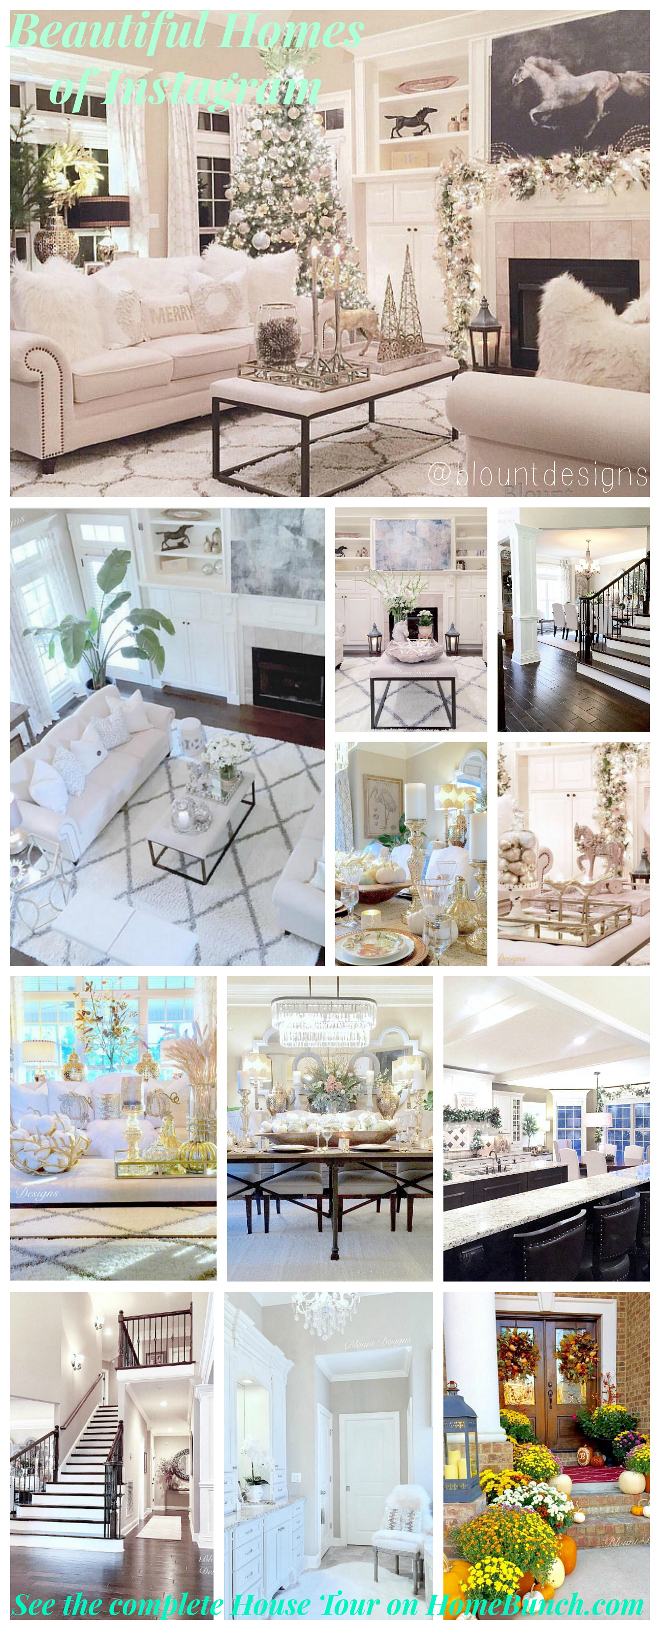 Beautiful Homes of Instagram. #BeautifulHomes #Instagram beautiful-homes-of-instagram